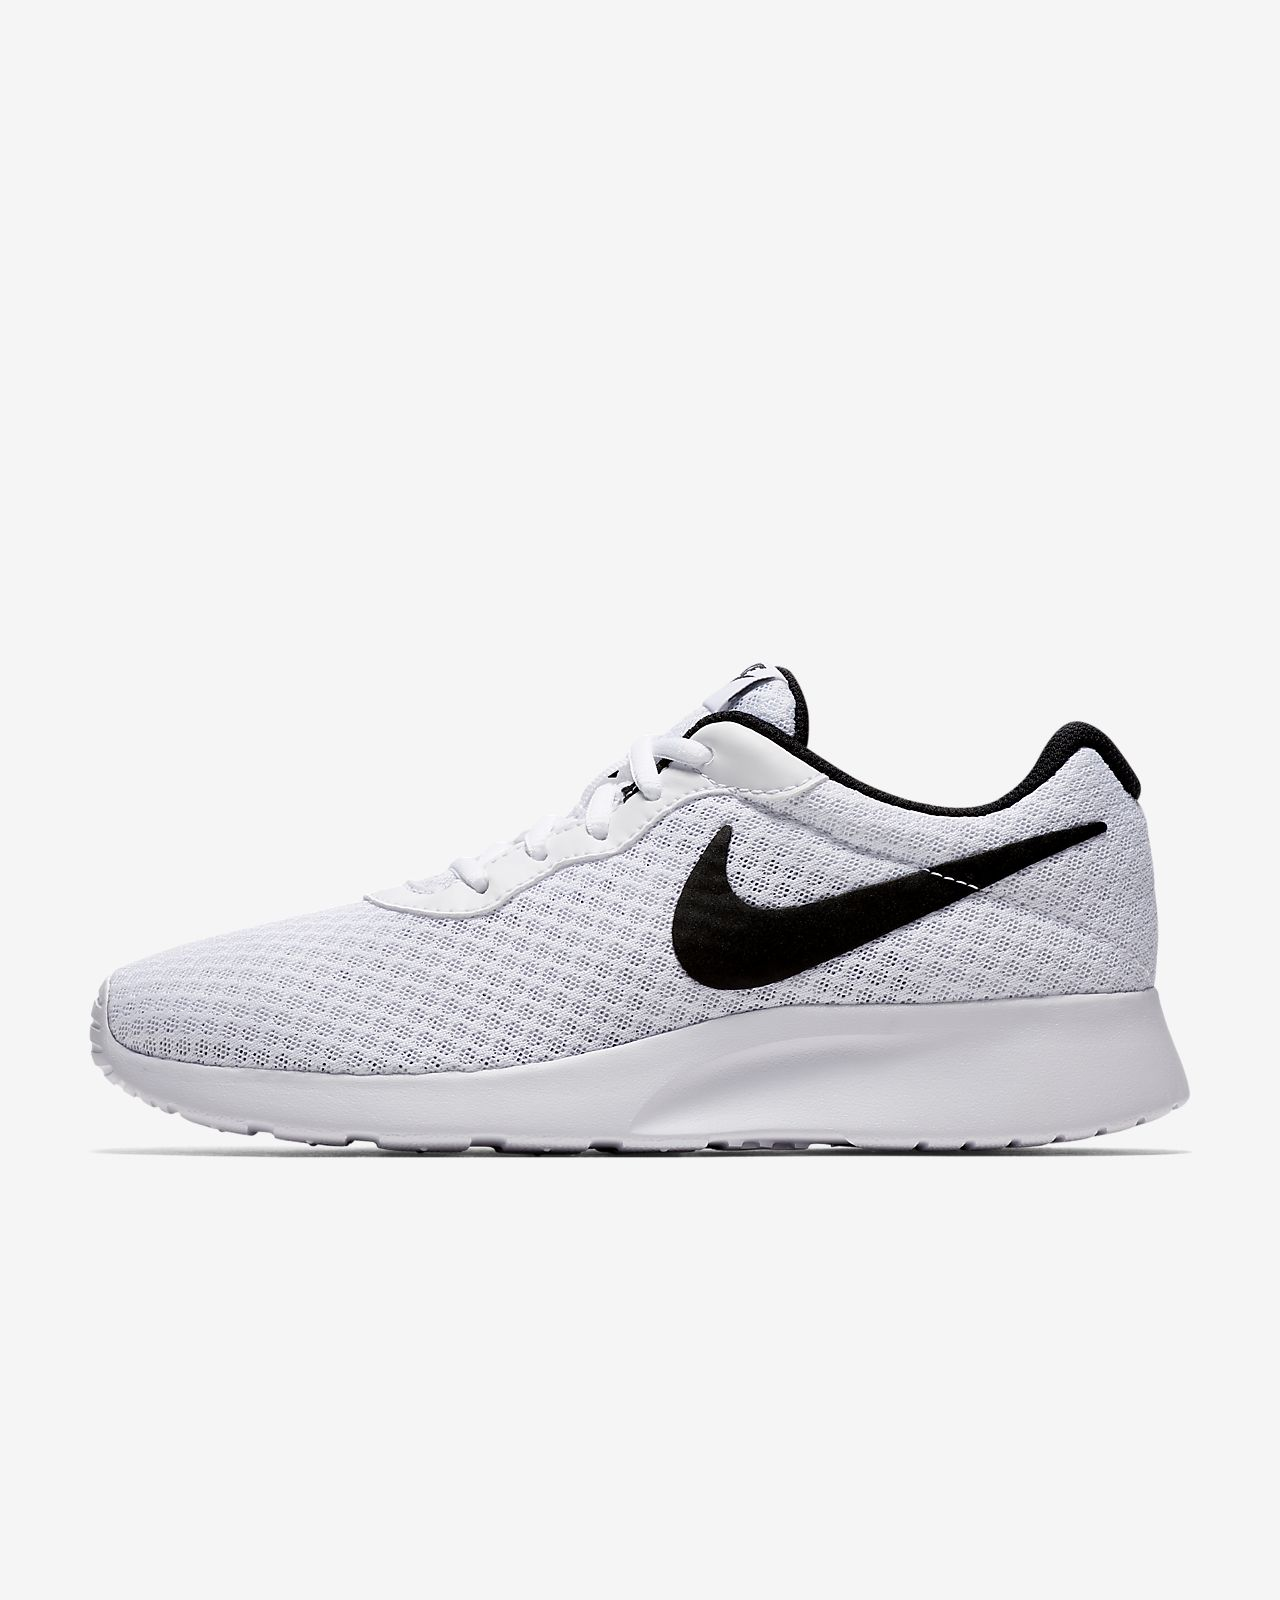 NIKE ATHLEISURE: NEW SHOES FOR THE PERFECT LOOK THIS SPRING